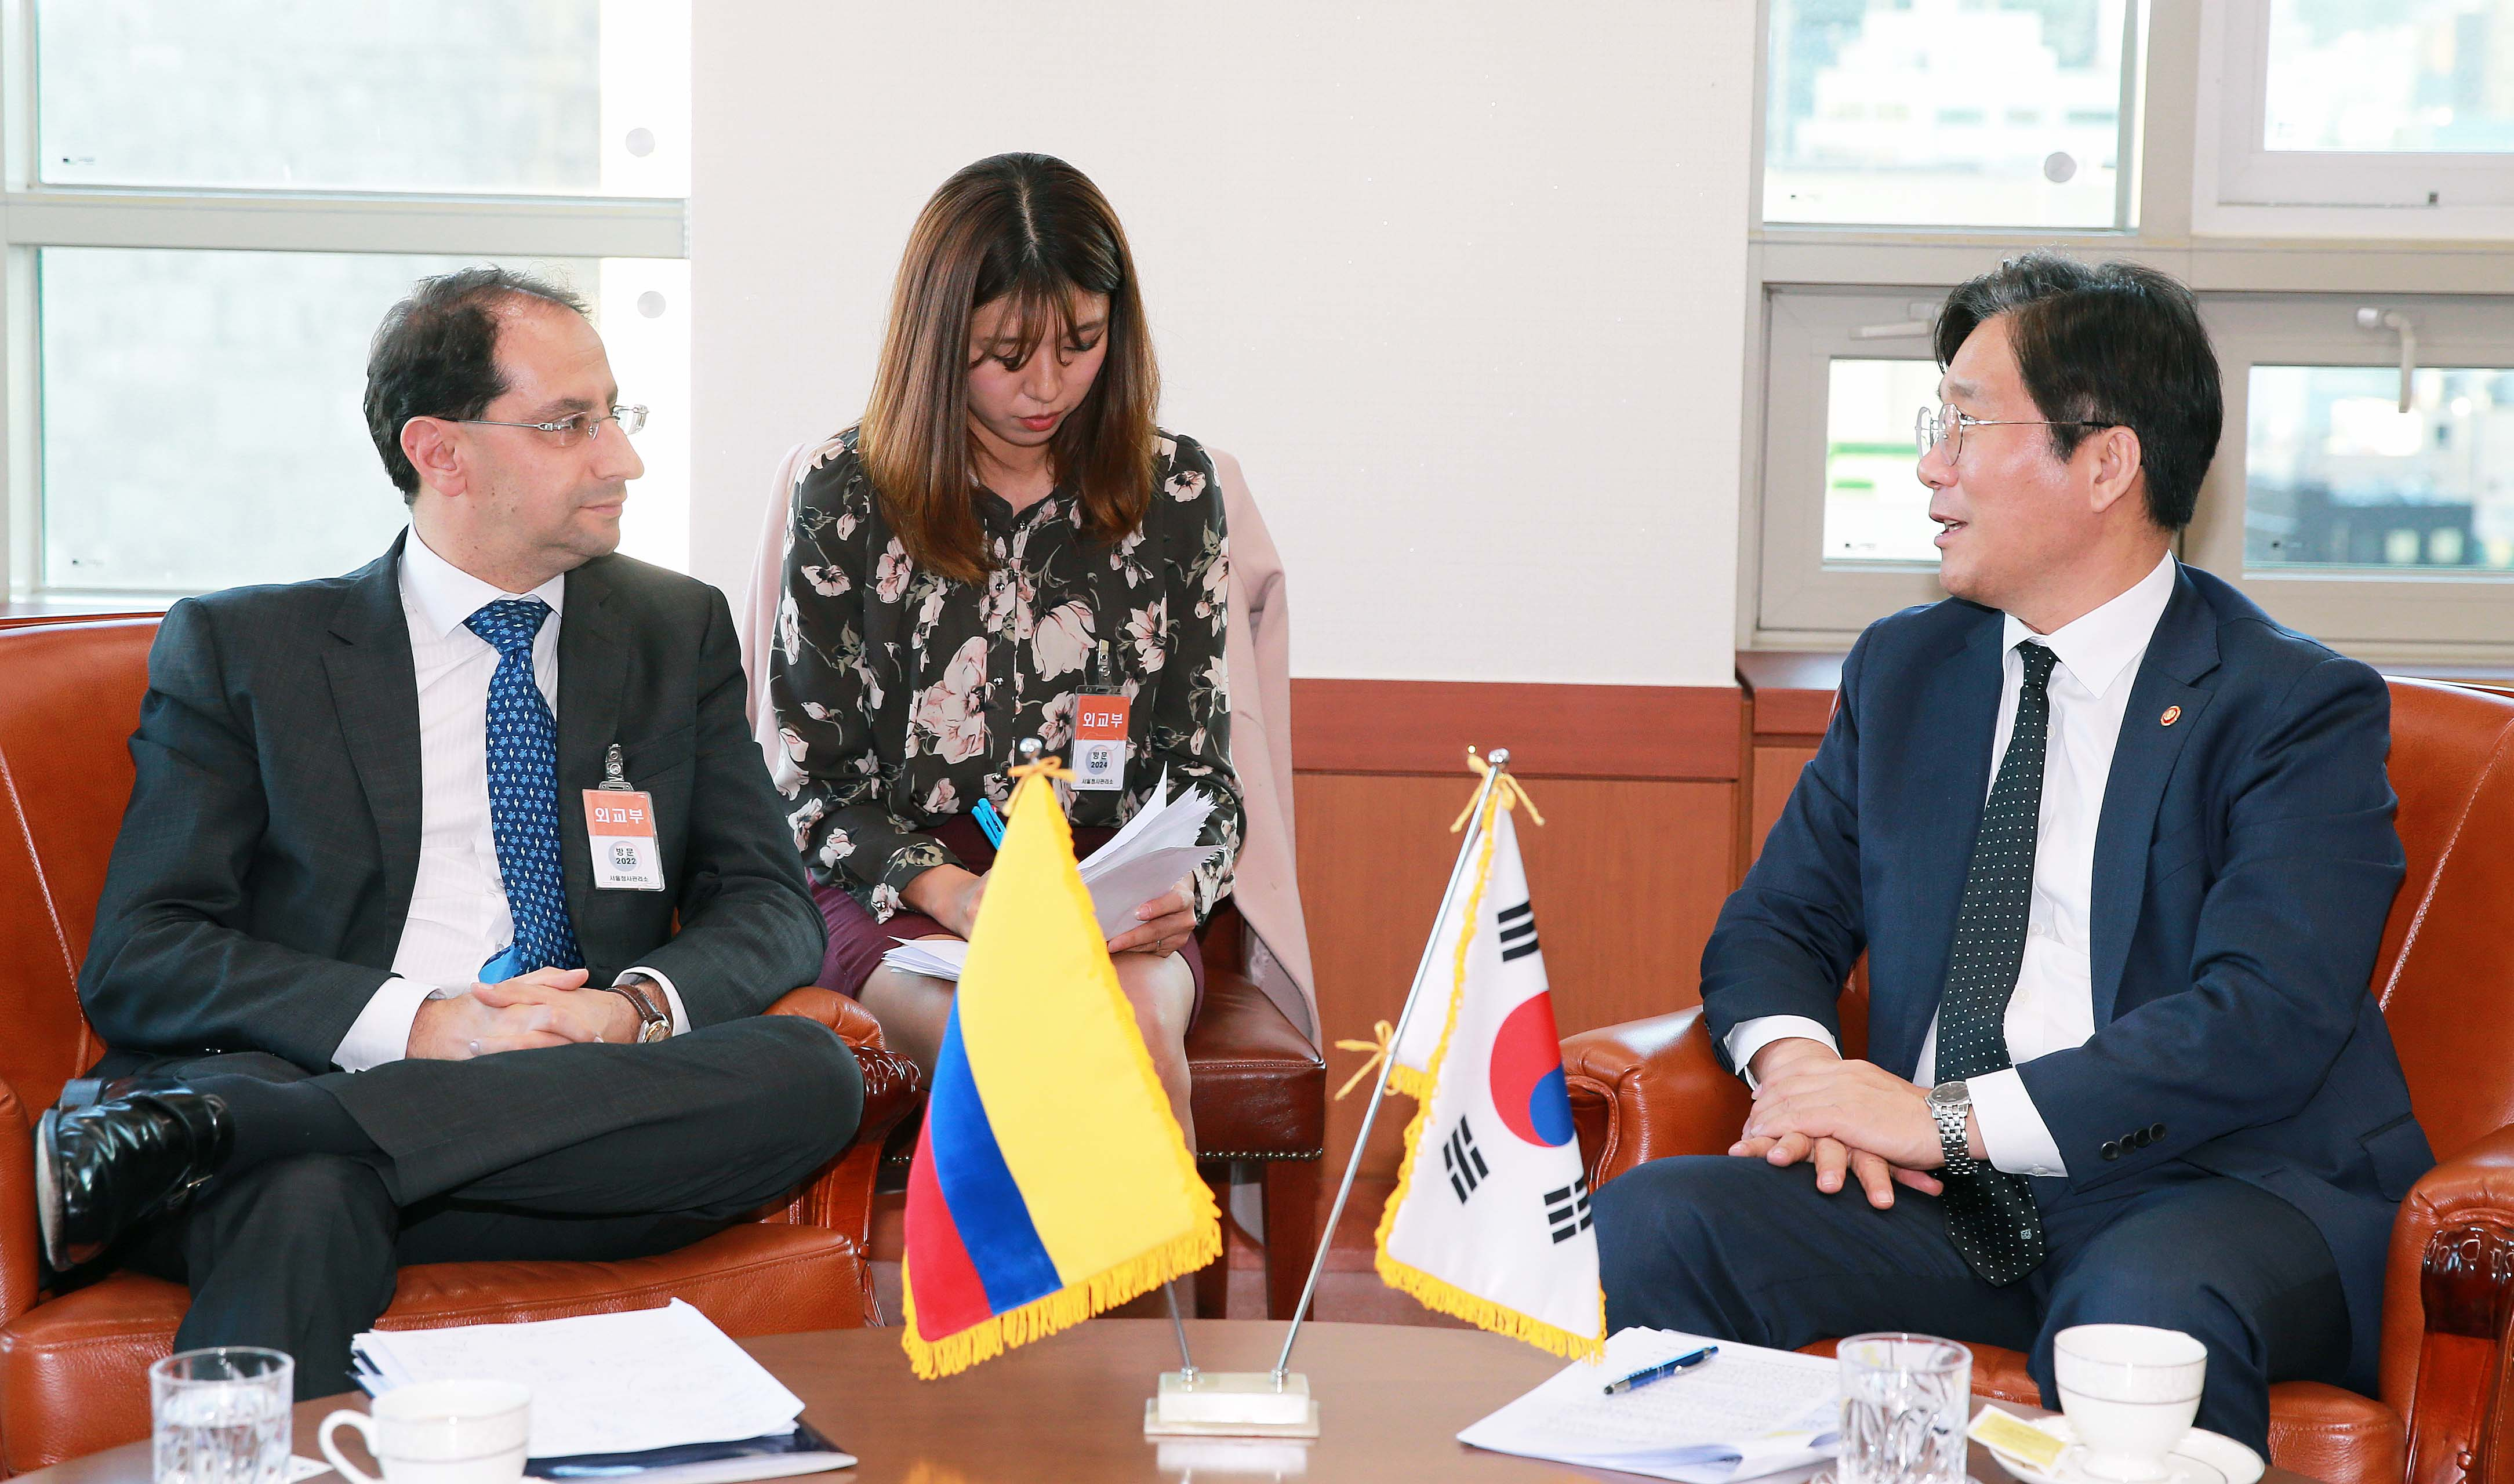 Minister Sung meets with Colombian Commerce Minister in Seoul Image 0